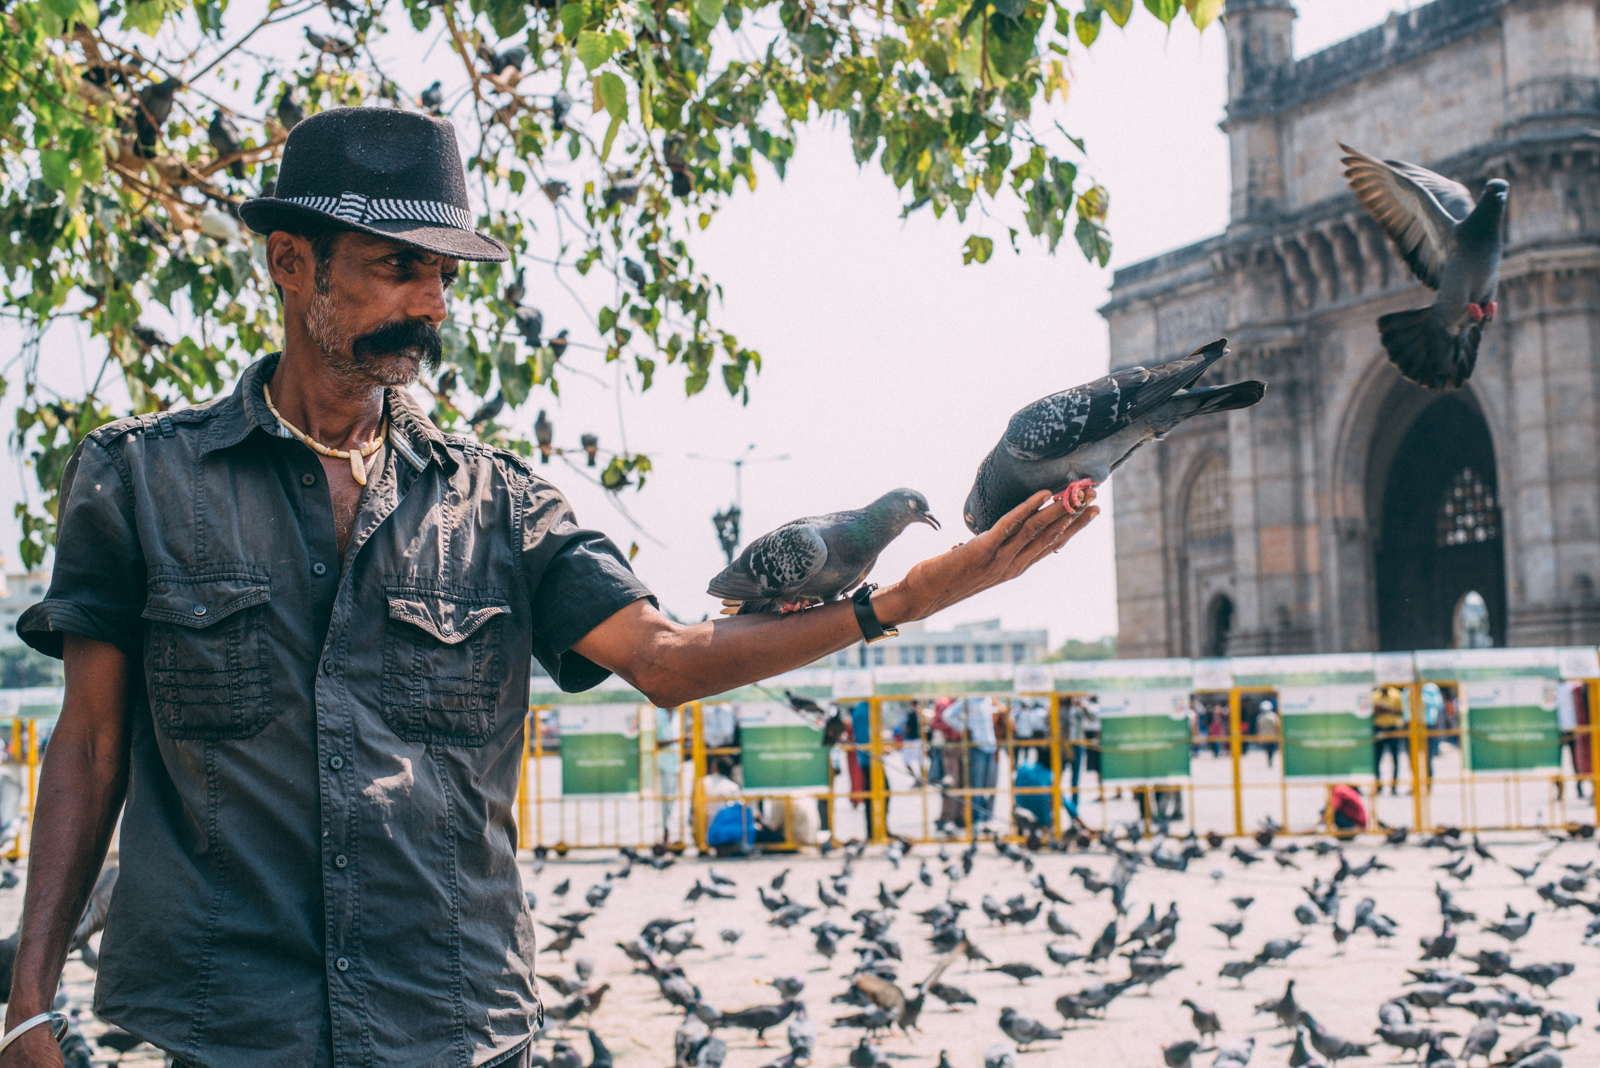 Birdman of Mumbai (not sure if this is his official title)